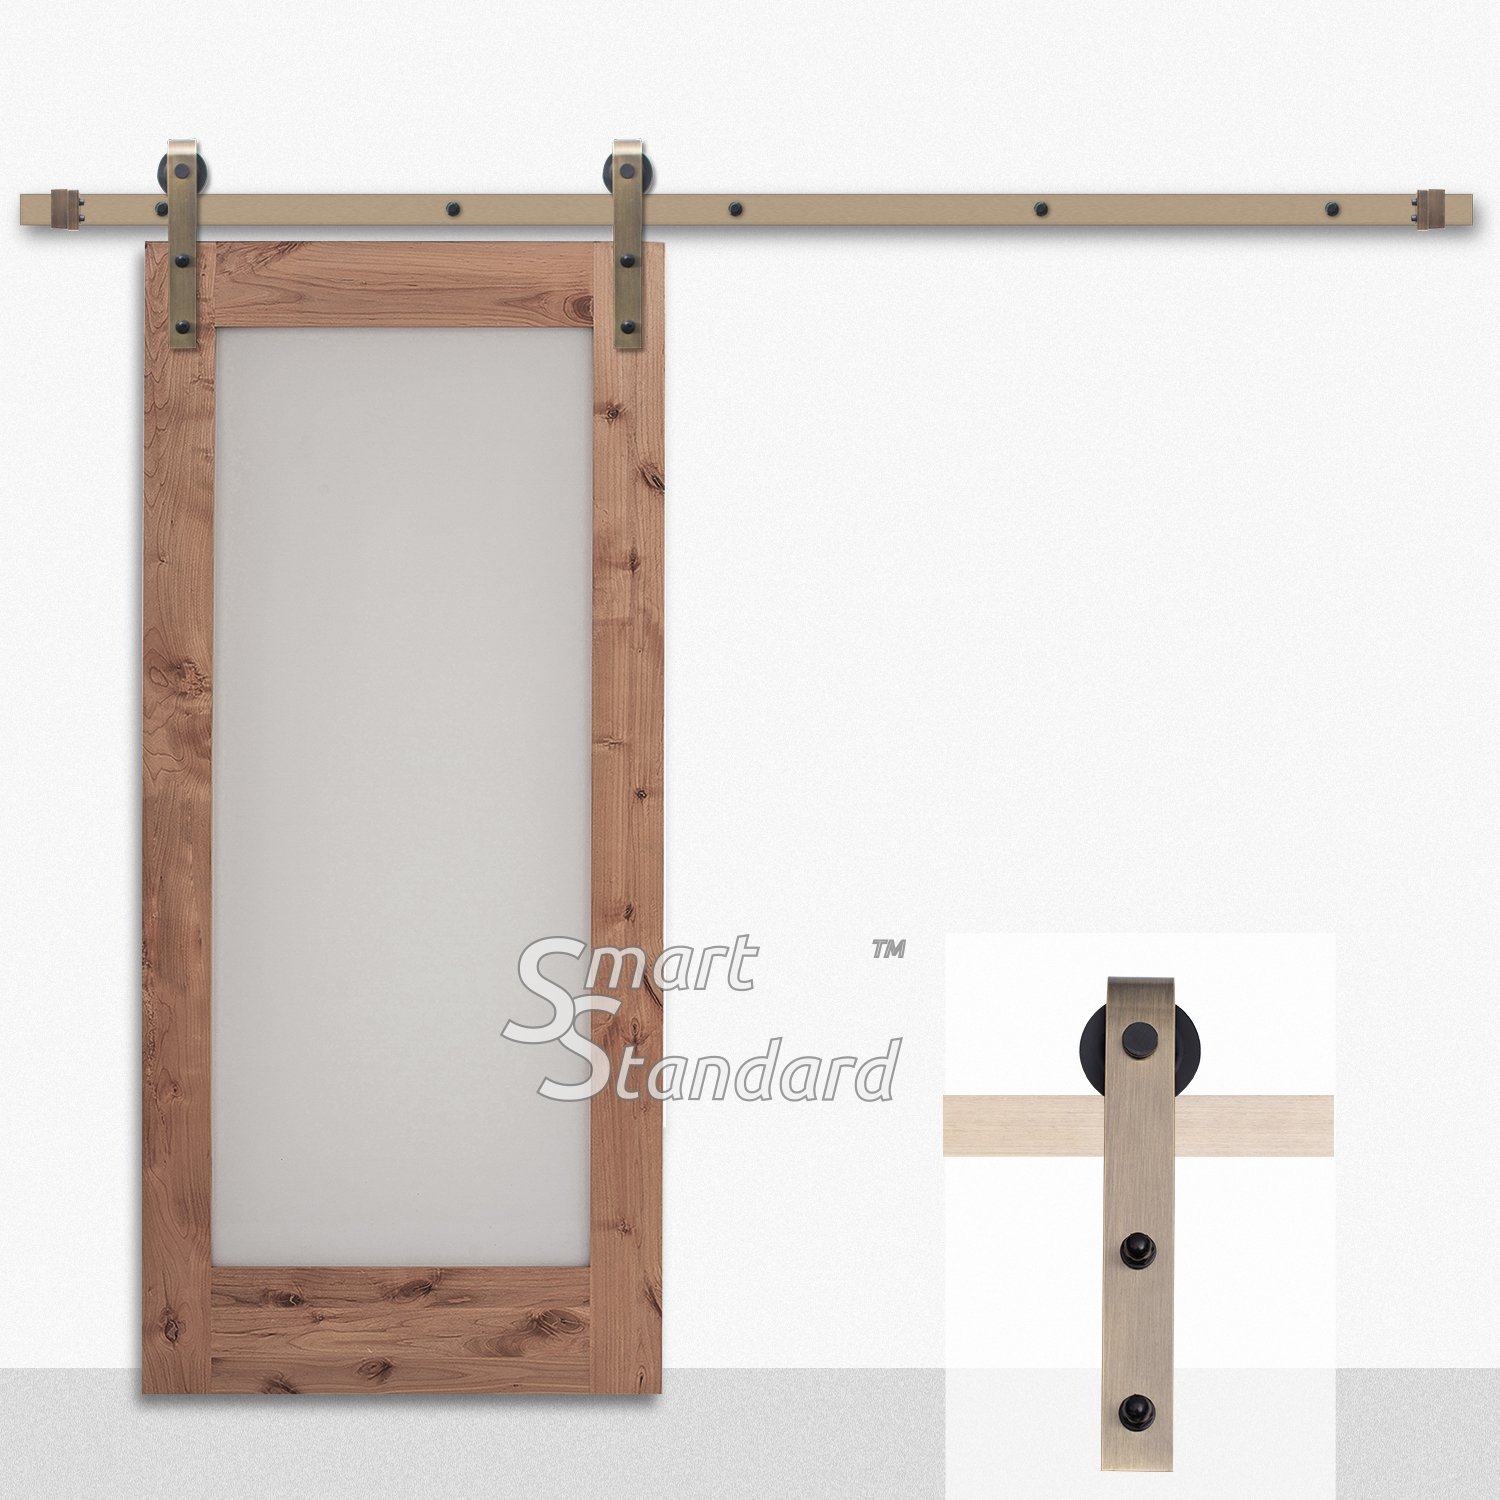 6.6ft Heavy Duty Bronze Sliding Barn Door Hardware Kit - Super Smoothly and Quietly - Simple and Easy to Install - Includes Step-by-Step Installation Instruction - Single Rail -Fit 36''-40'' Wide Door